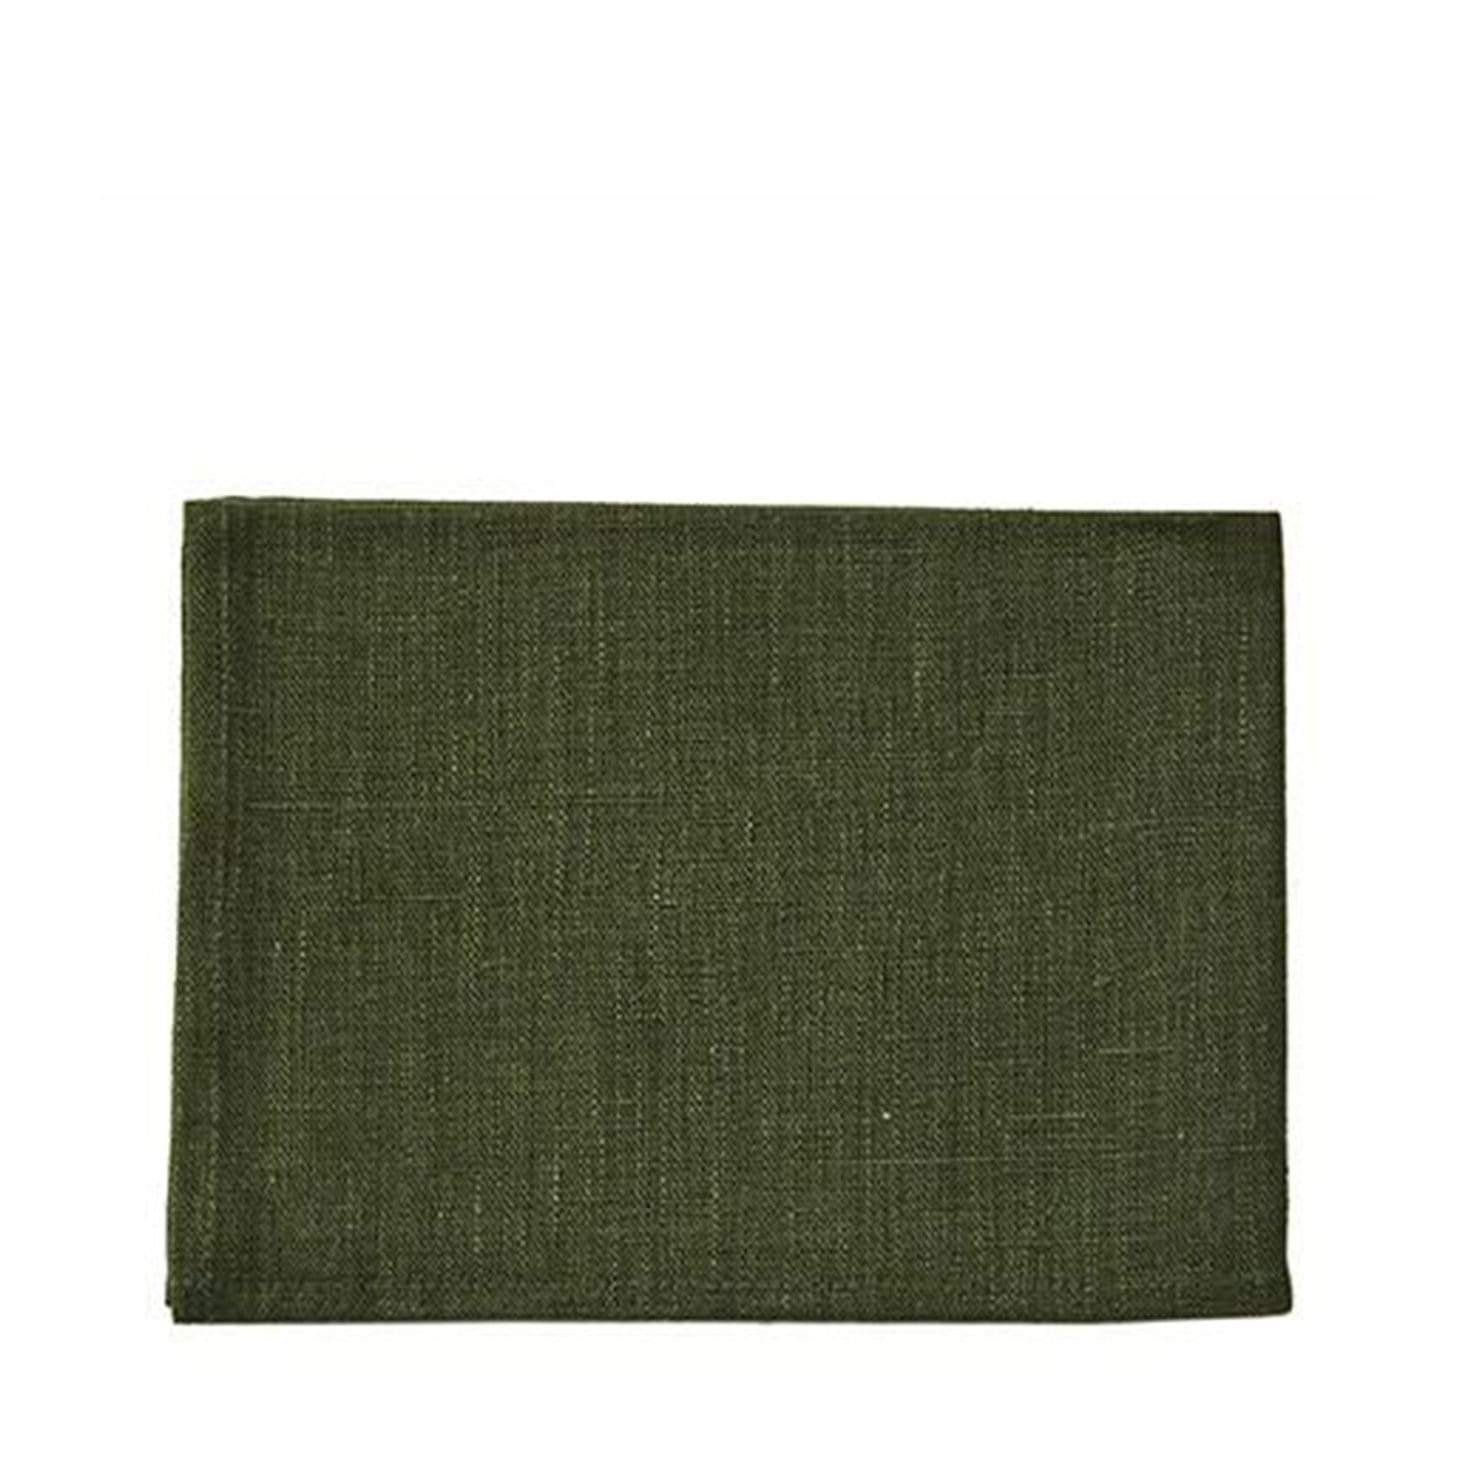 Fog Linen Work Tea Towel - Laurel